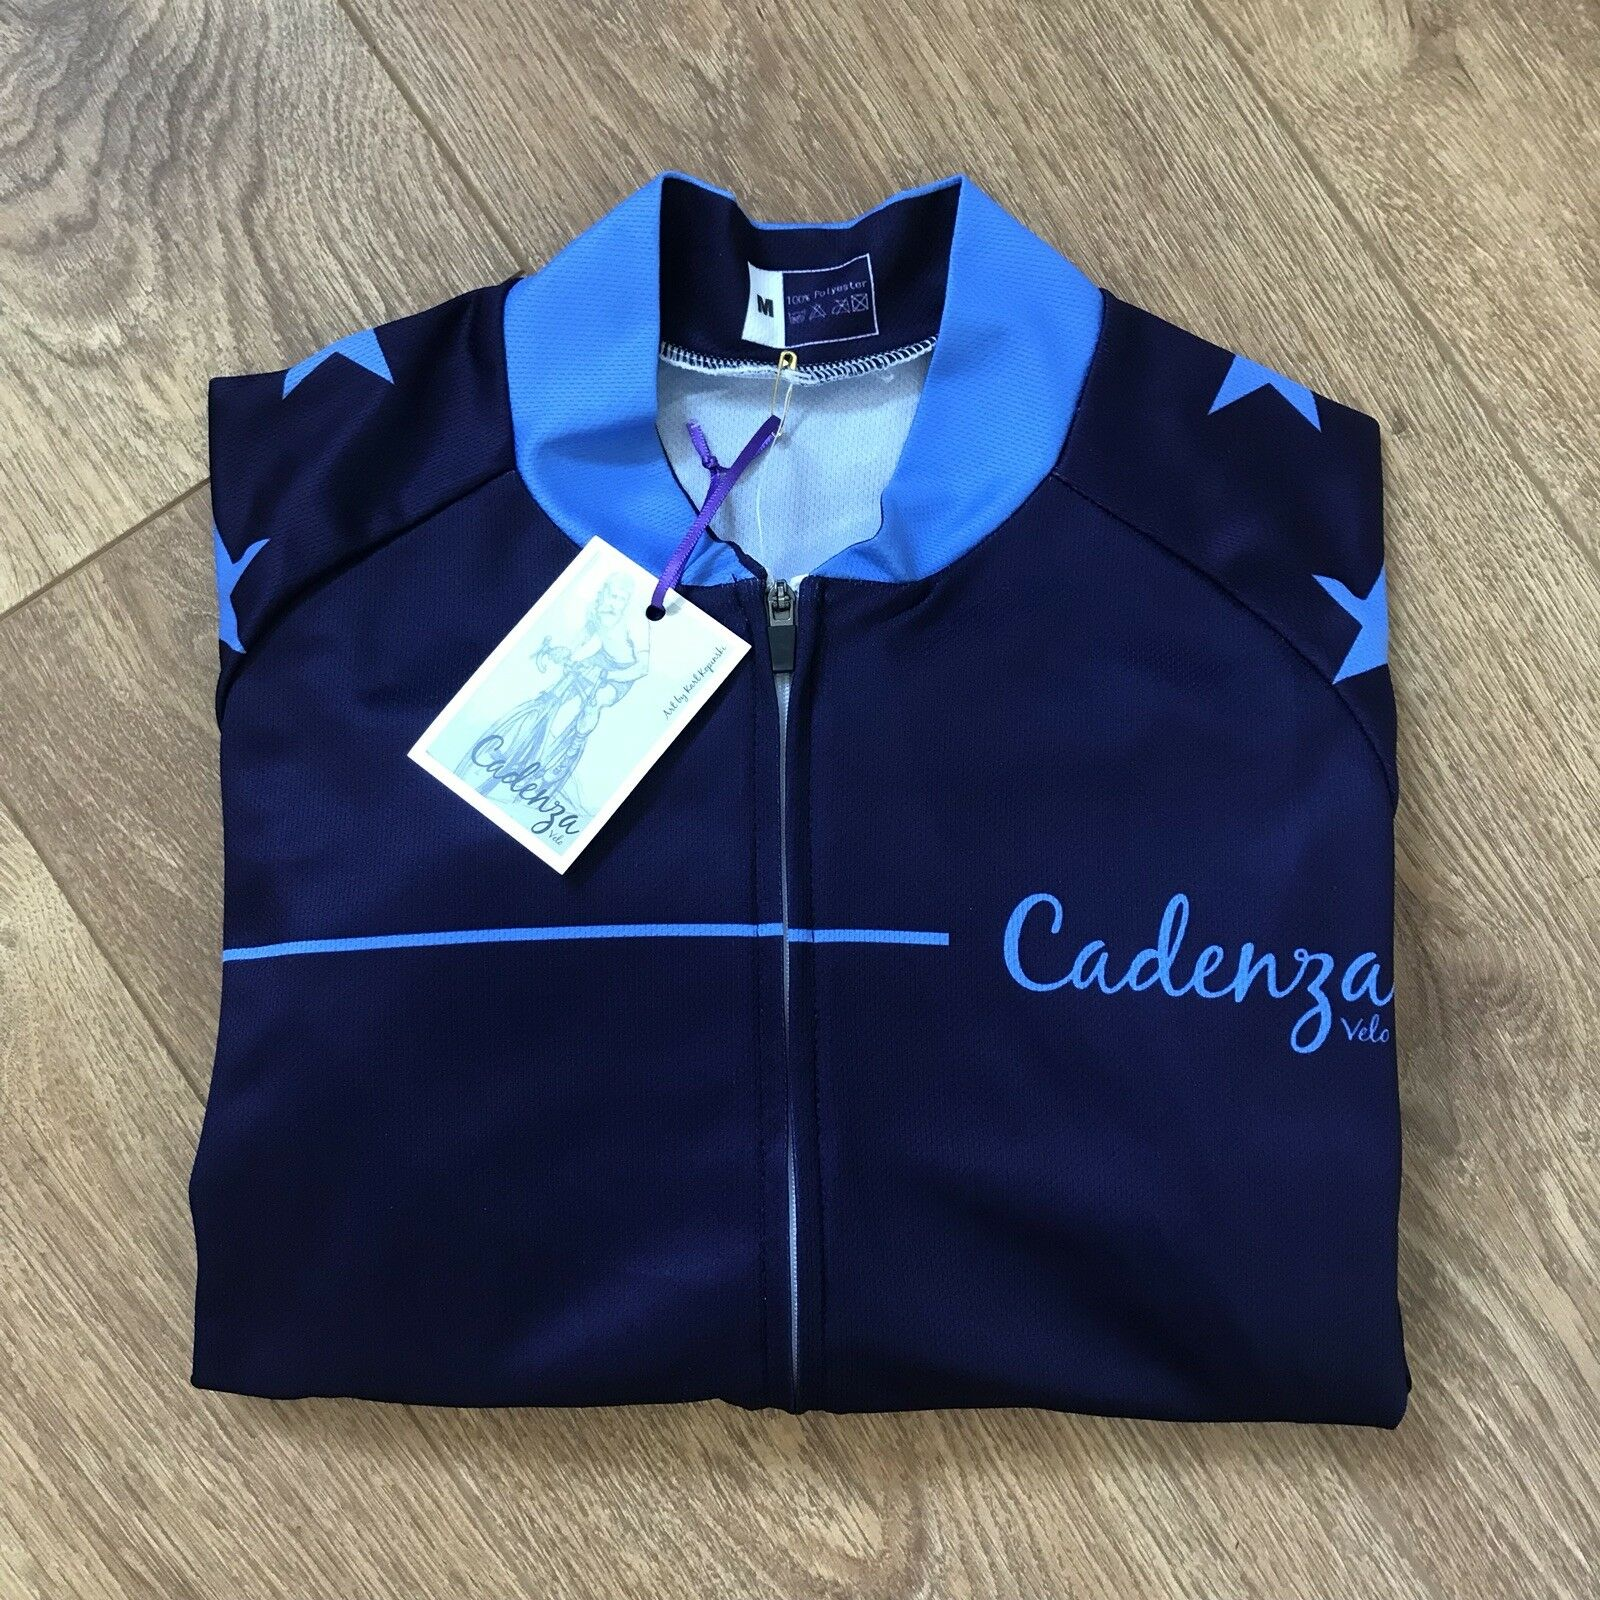 Cadenza Velo Ladies Women's  Road Bike Cycle XC Jersey RRP  99 Sale Cheap  find your favorite here